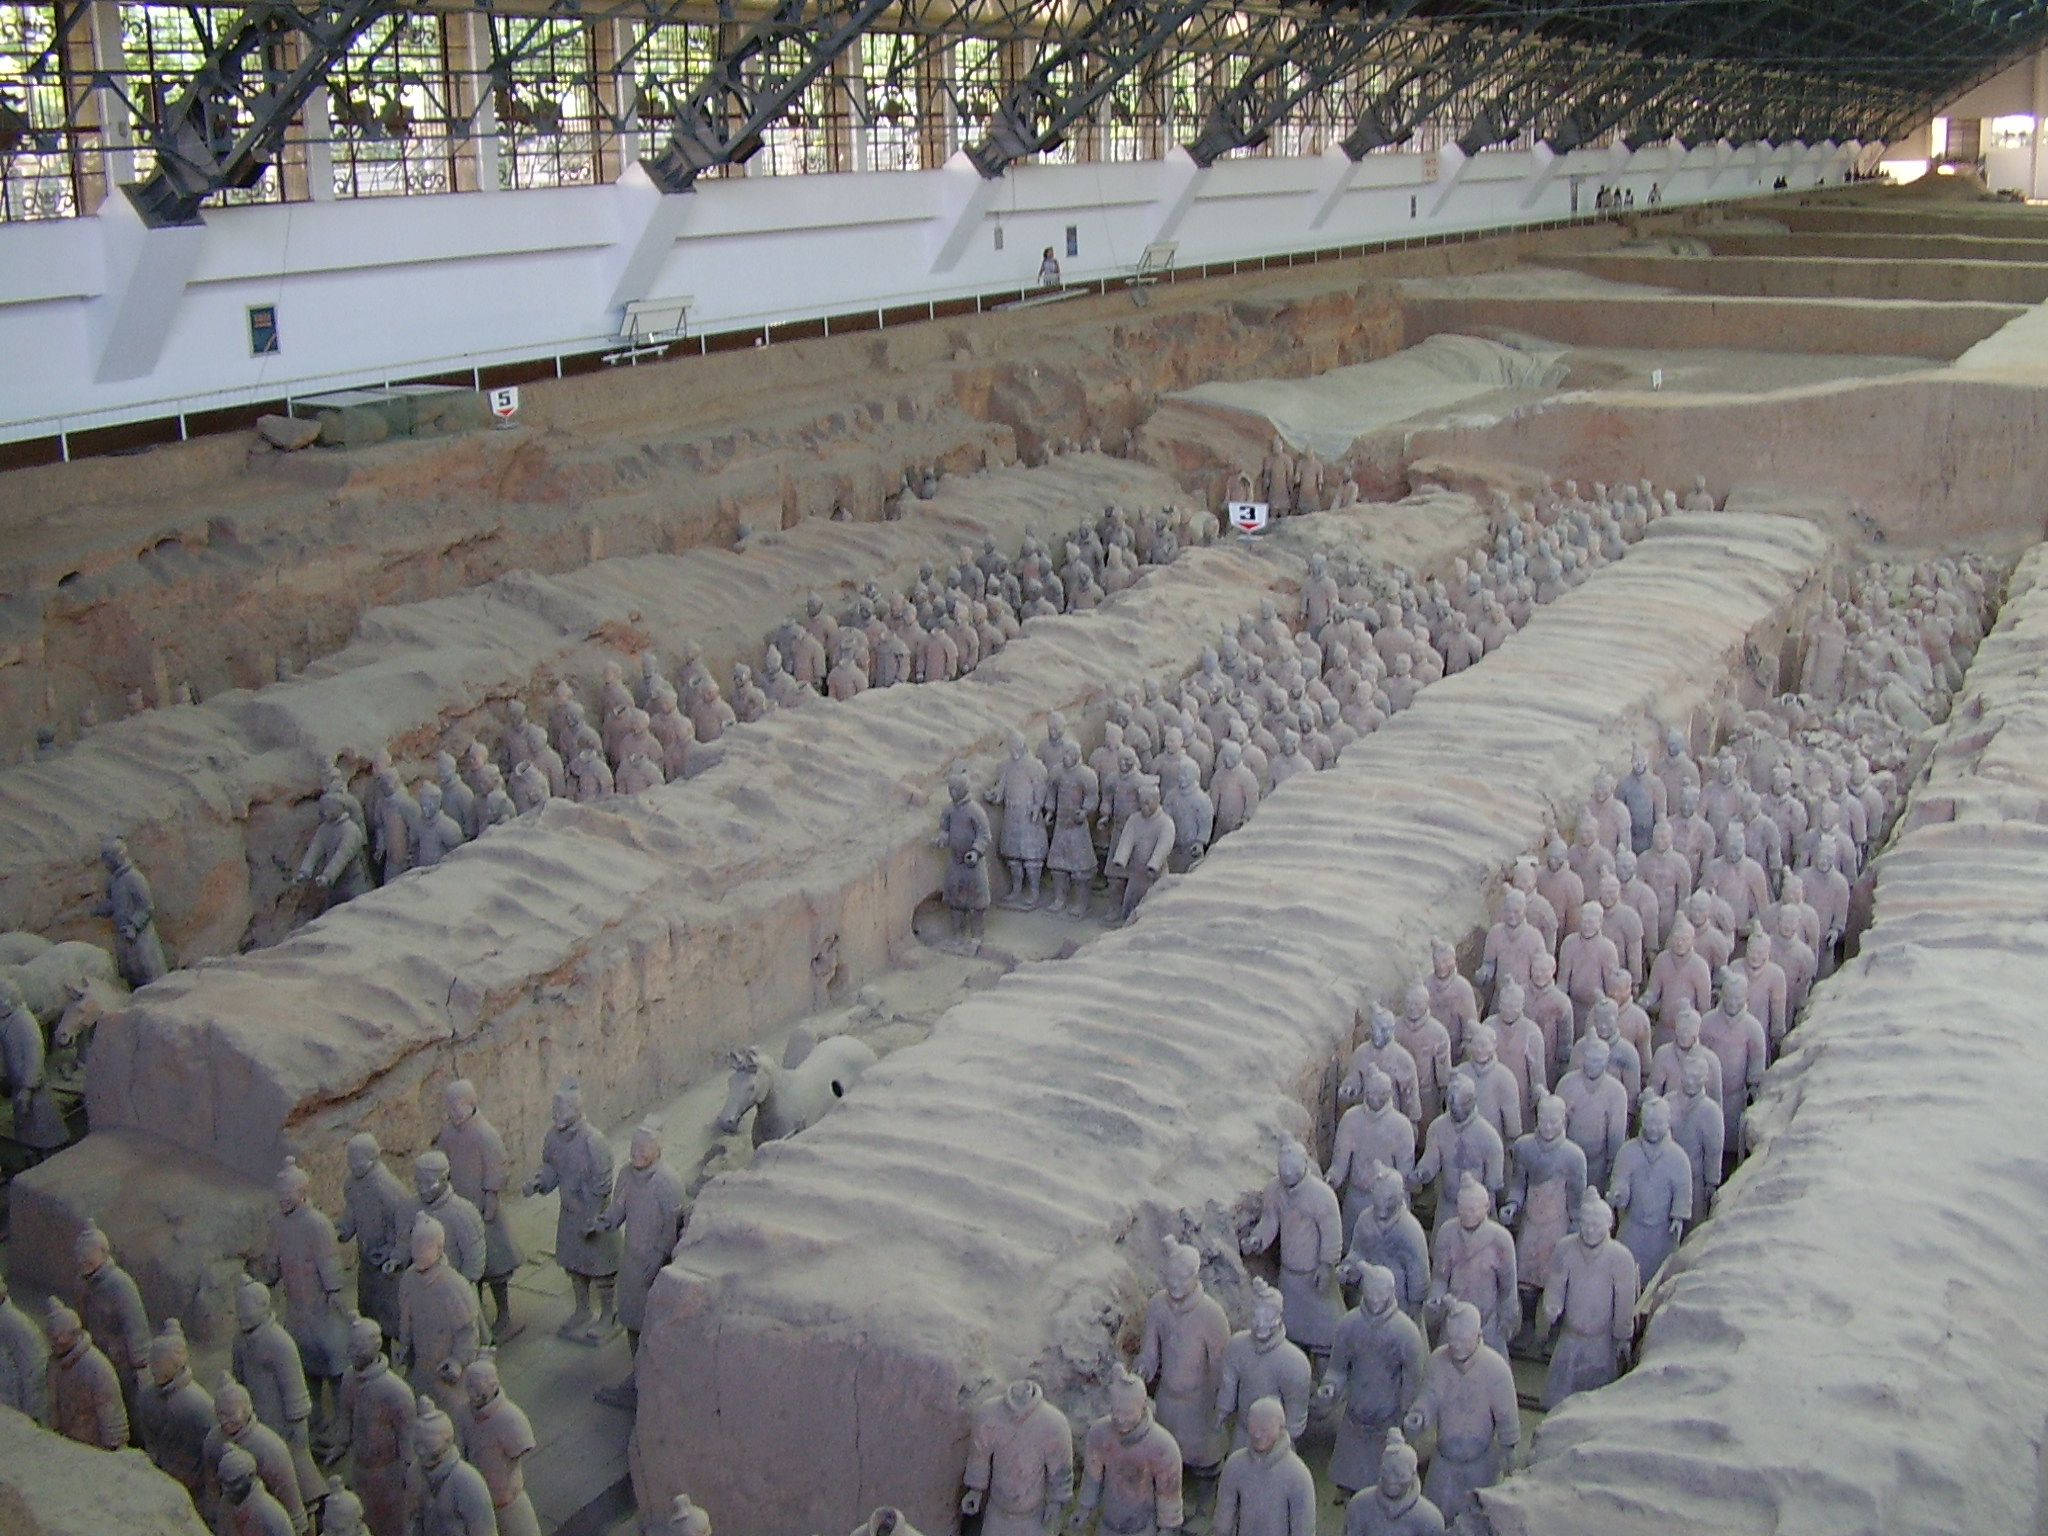 Still digging: Ten years on from my 2005 visit (pictured), terracotta armies are still being uncovered today.